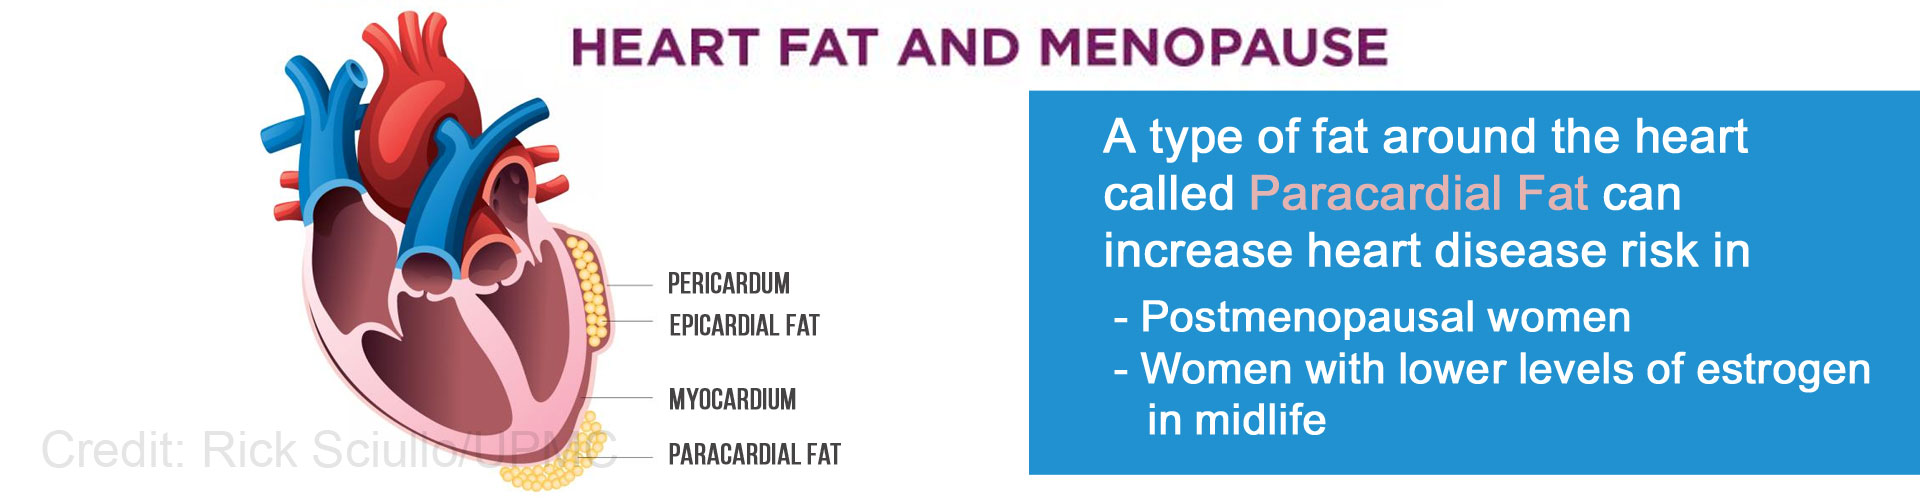 Heart Fat Associated With Higher Risk of Heart Disease in Postmenopausal Women